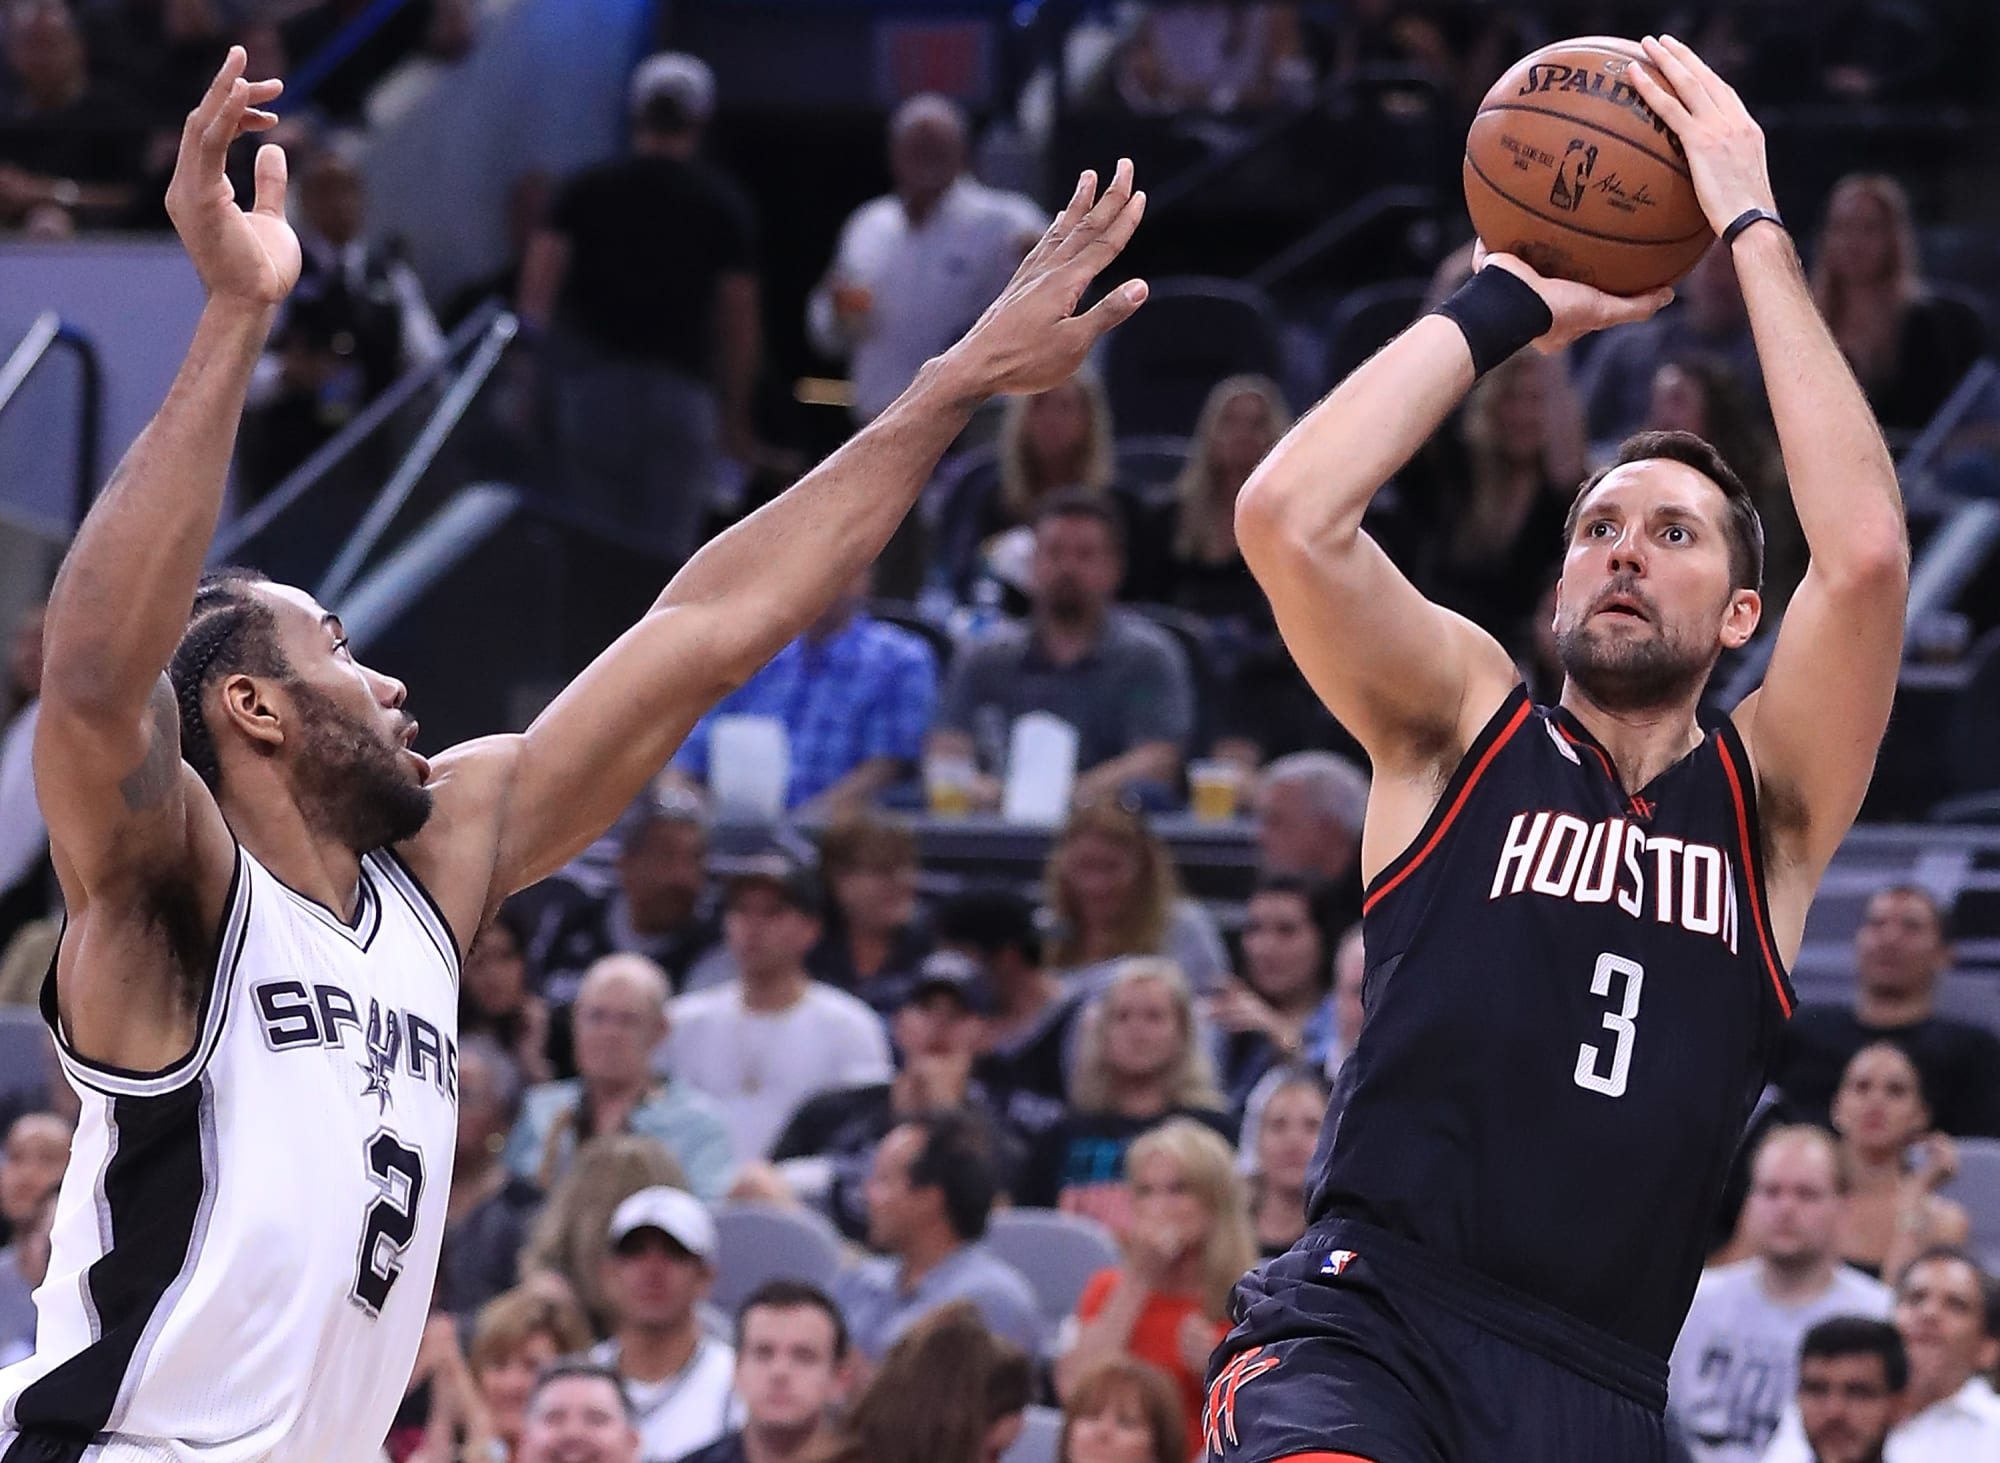 Today: Rockets' Ryan Anderson has team-highs across the board